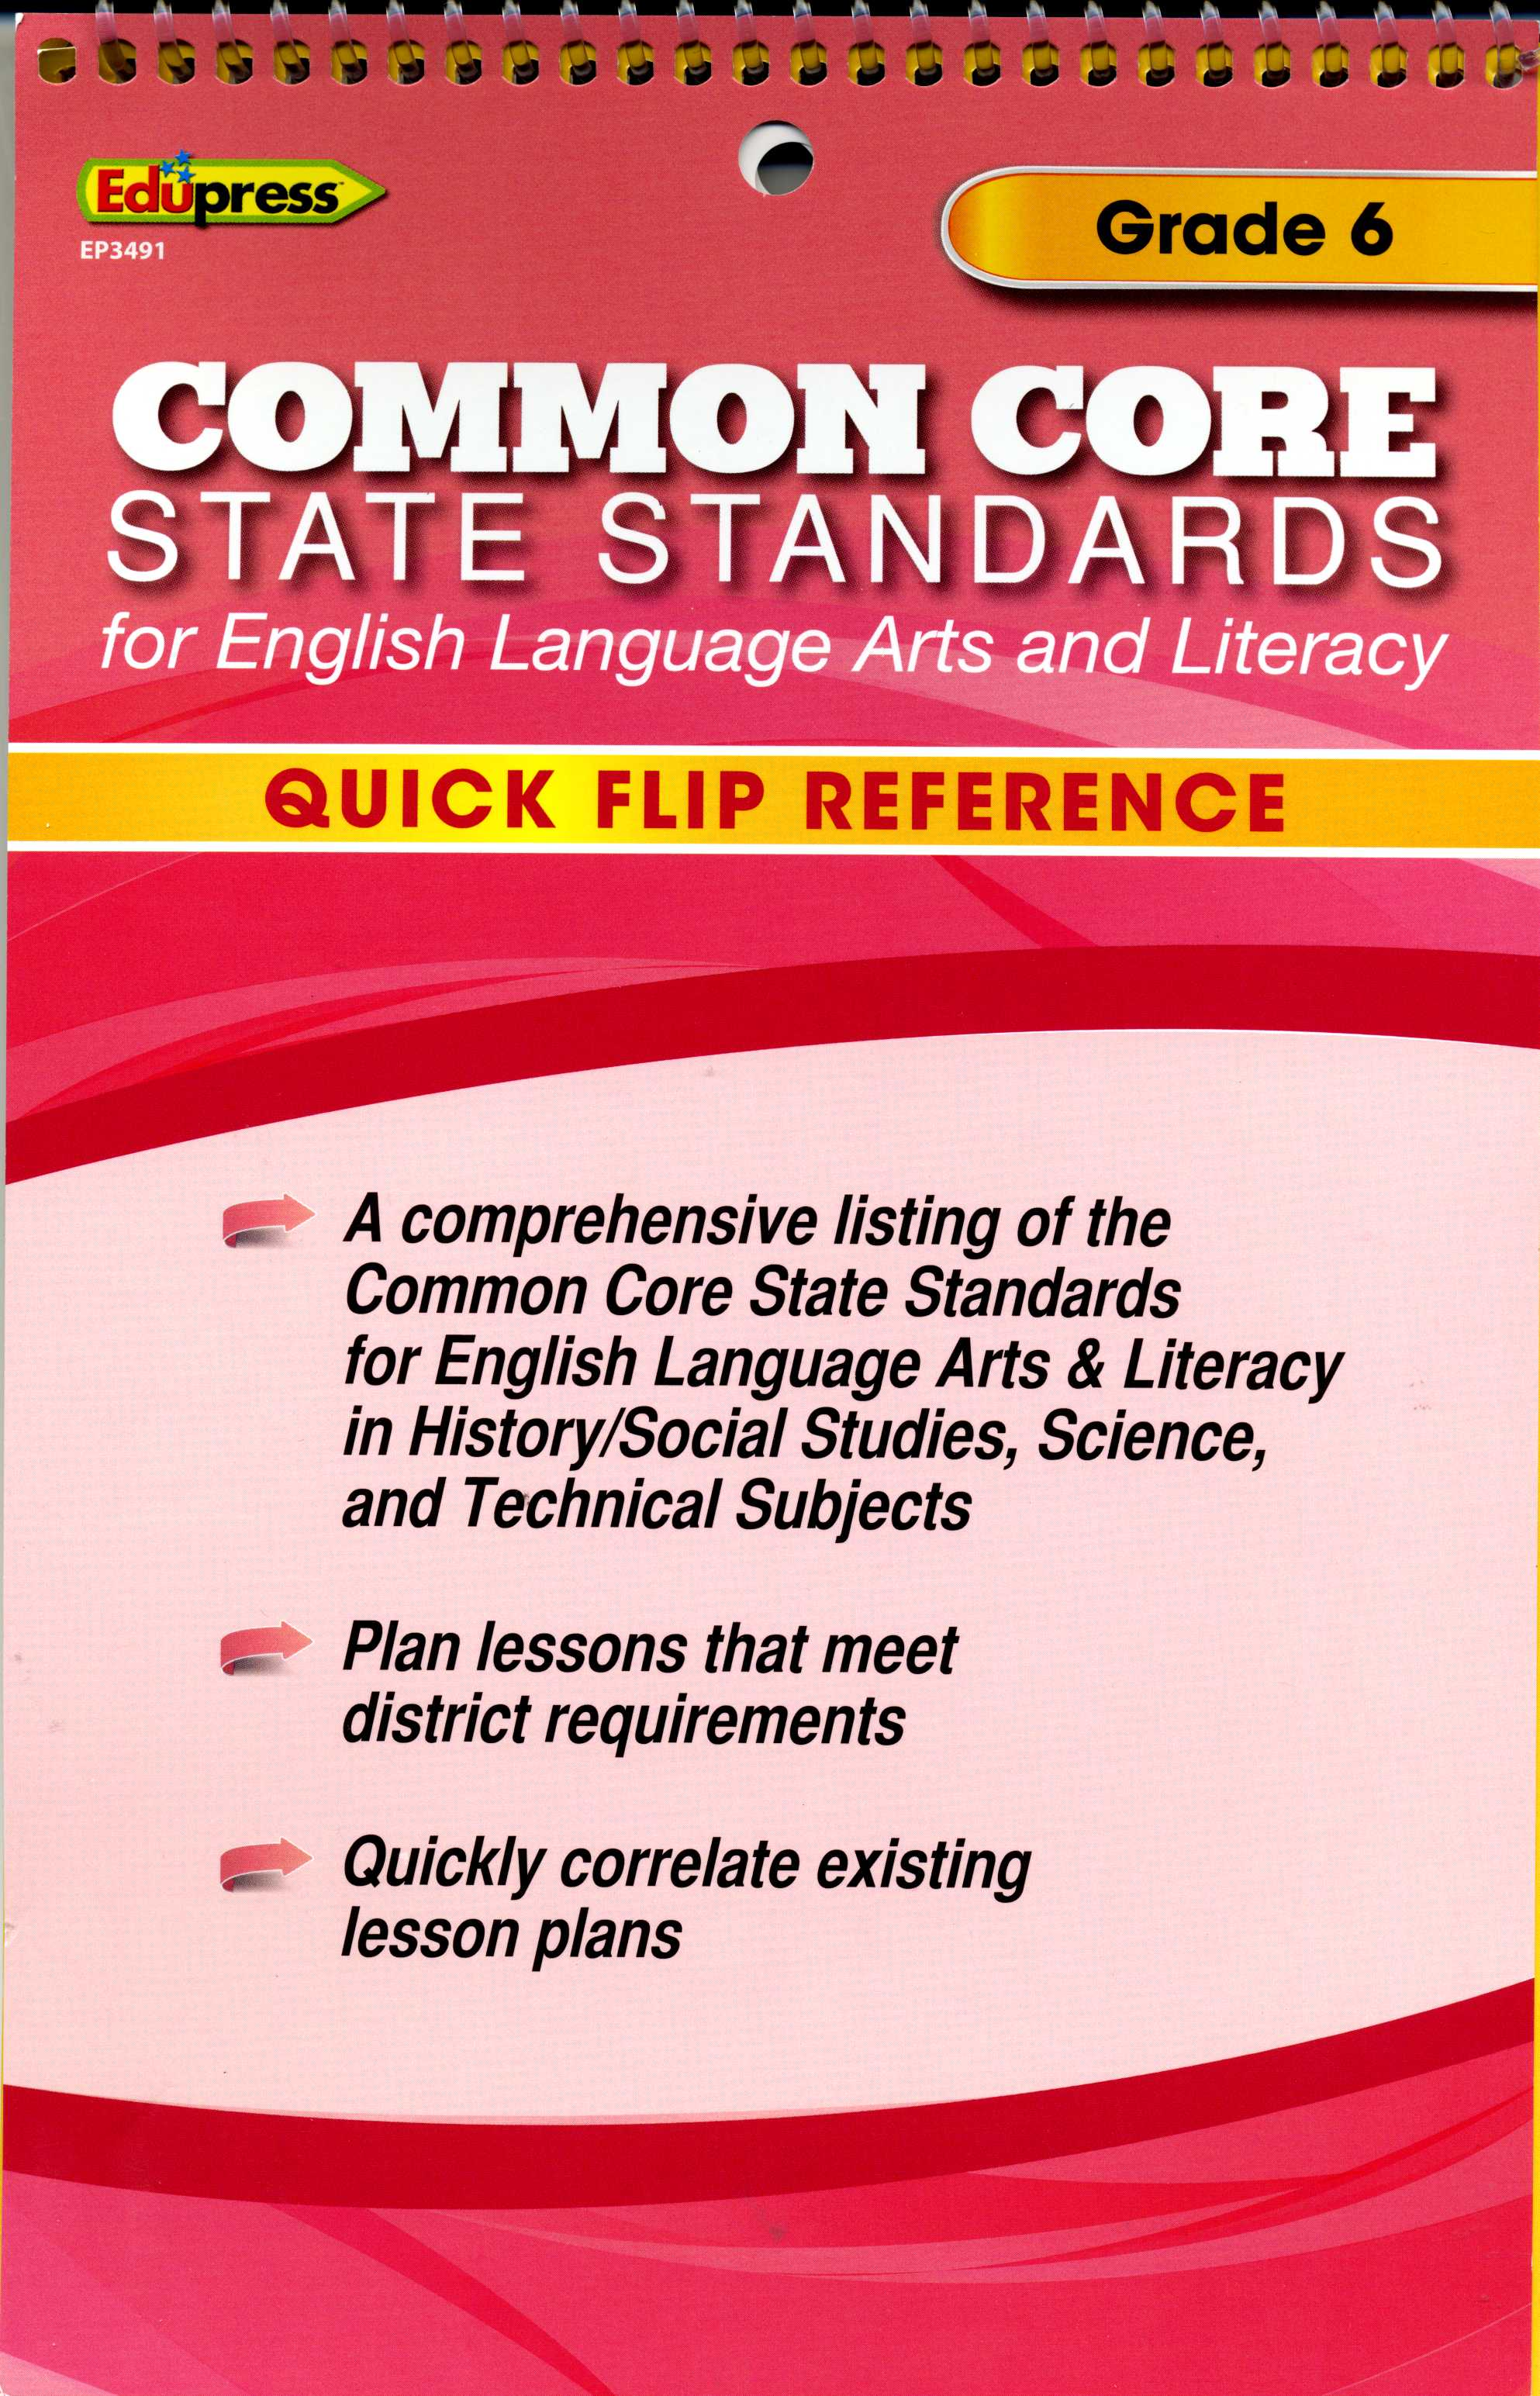 Common Core State Standards - Grade 6 Quick Flip Reference